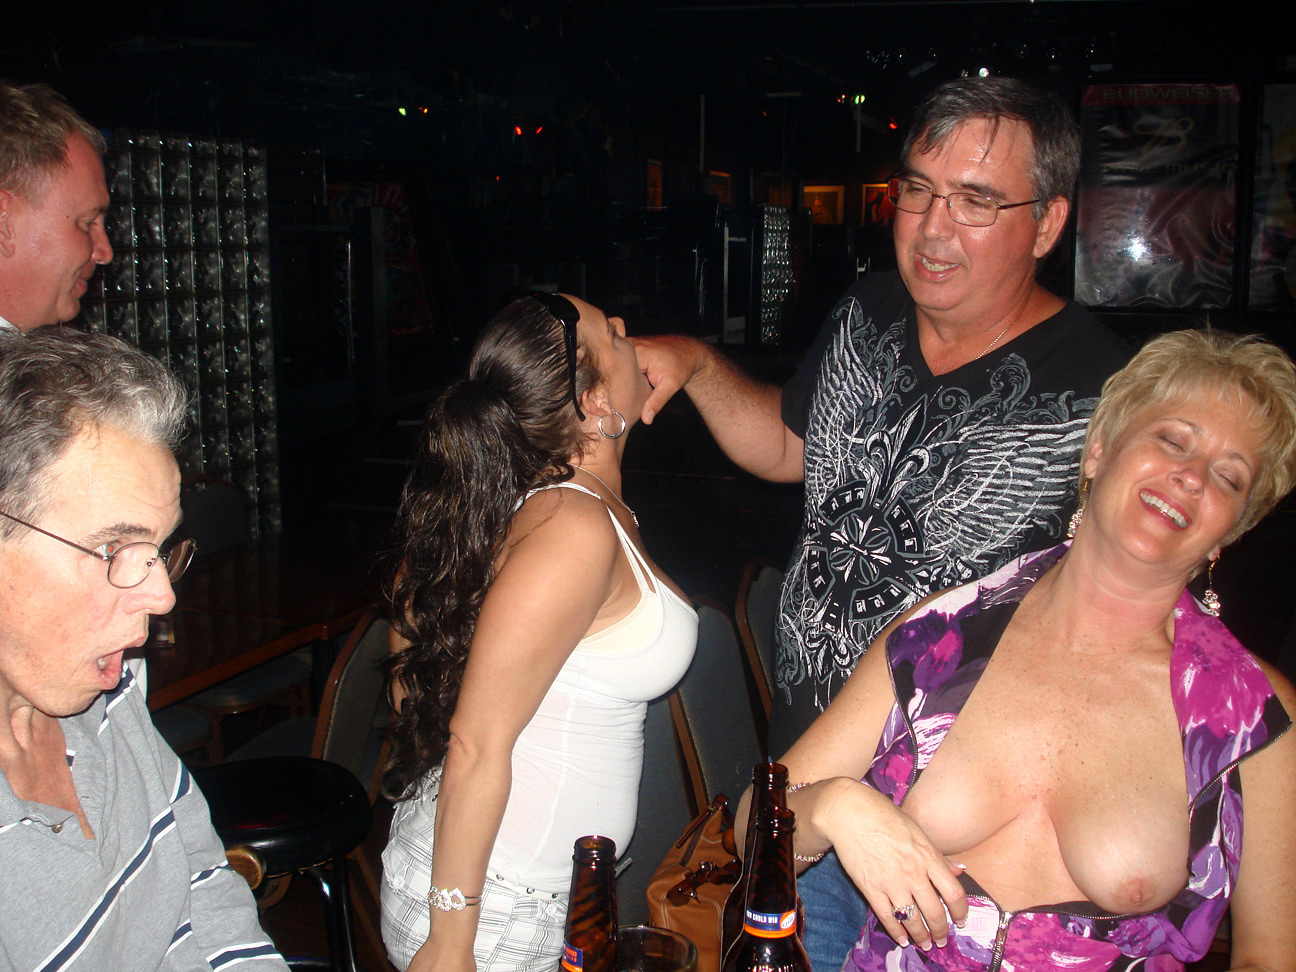 Adult clubs in tampa